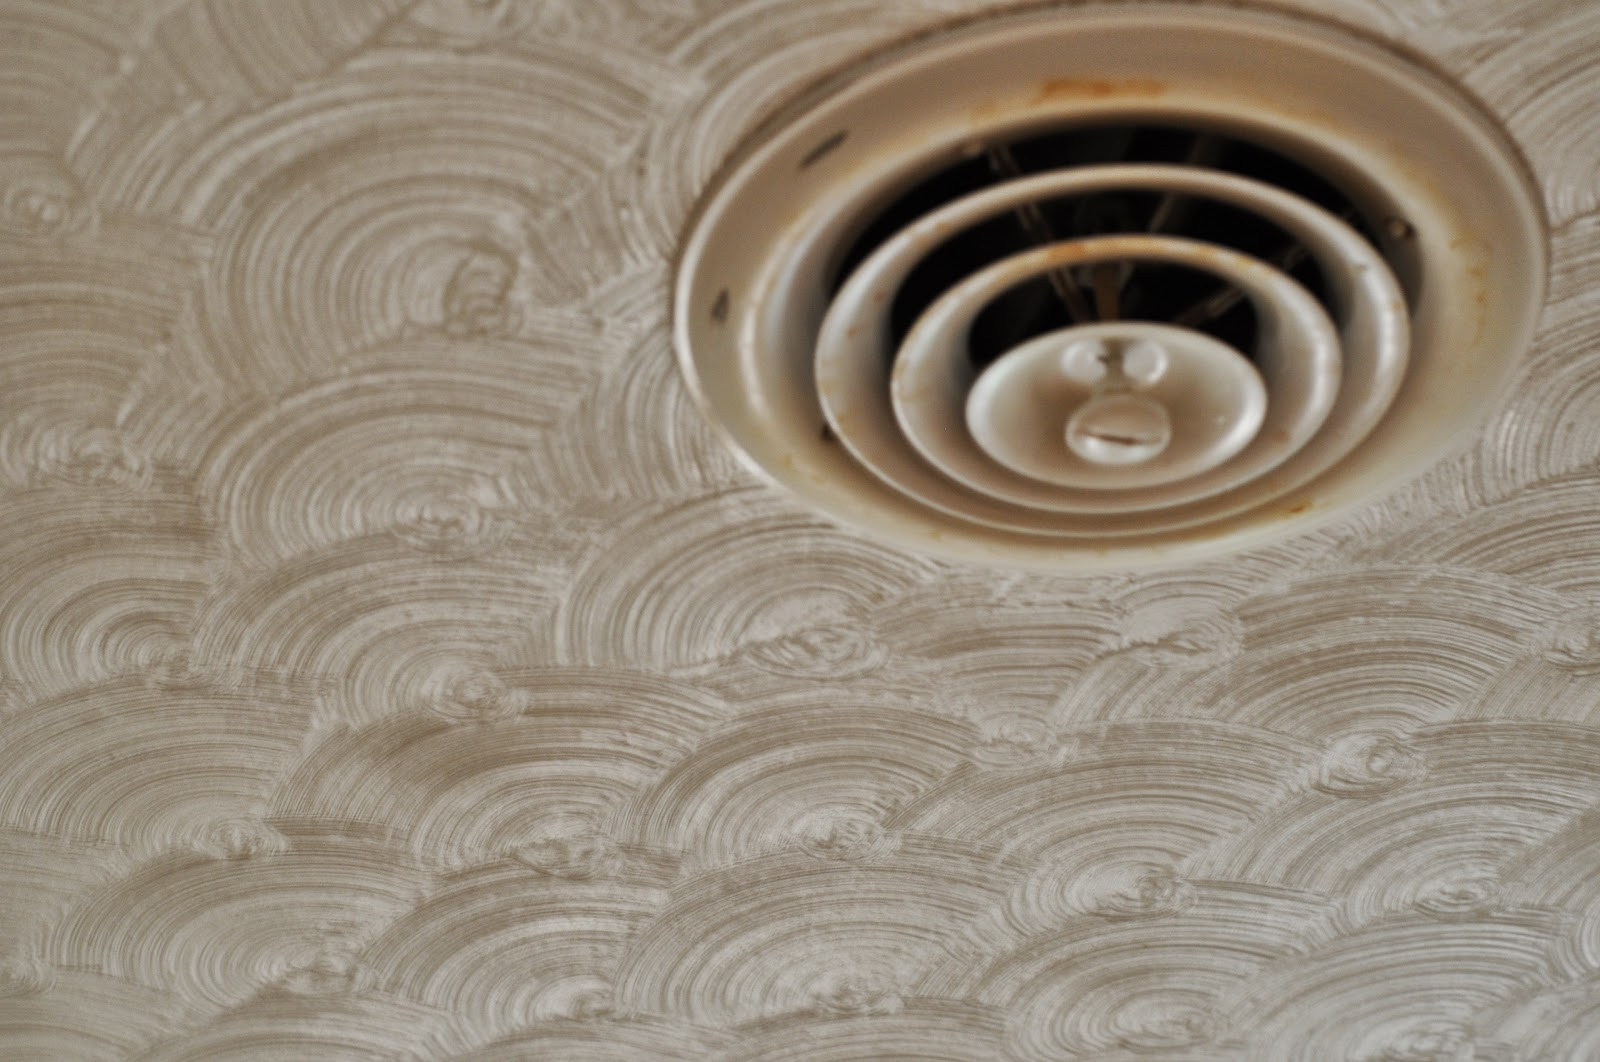 Dealing With Textured Plaster Ceilings